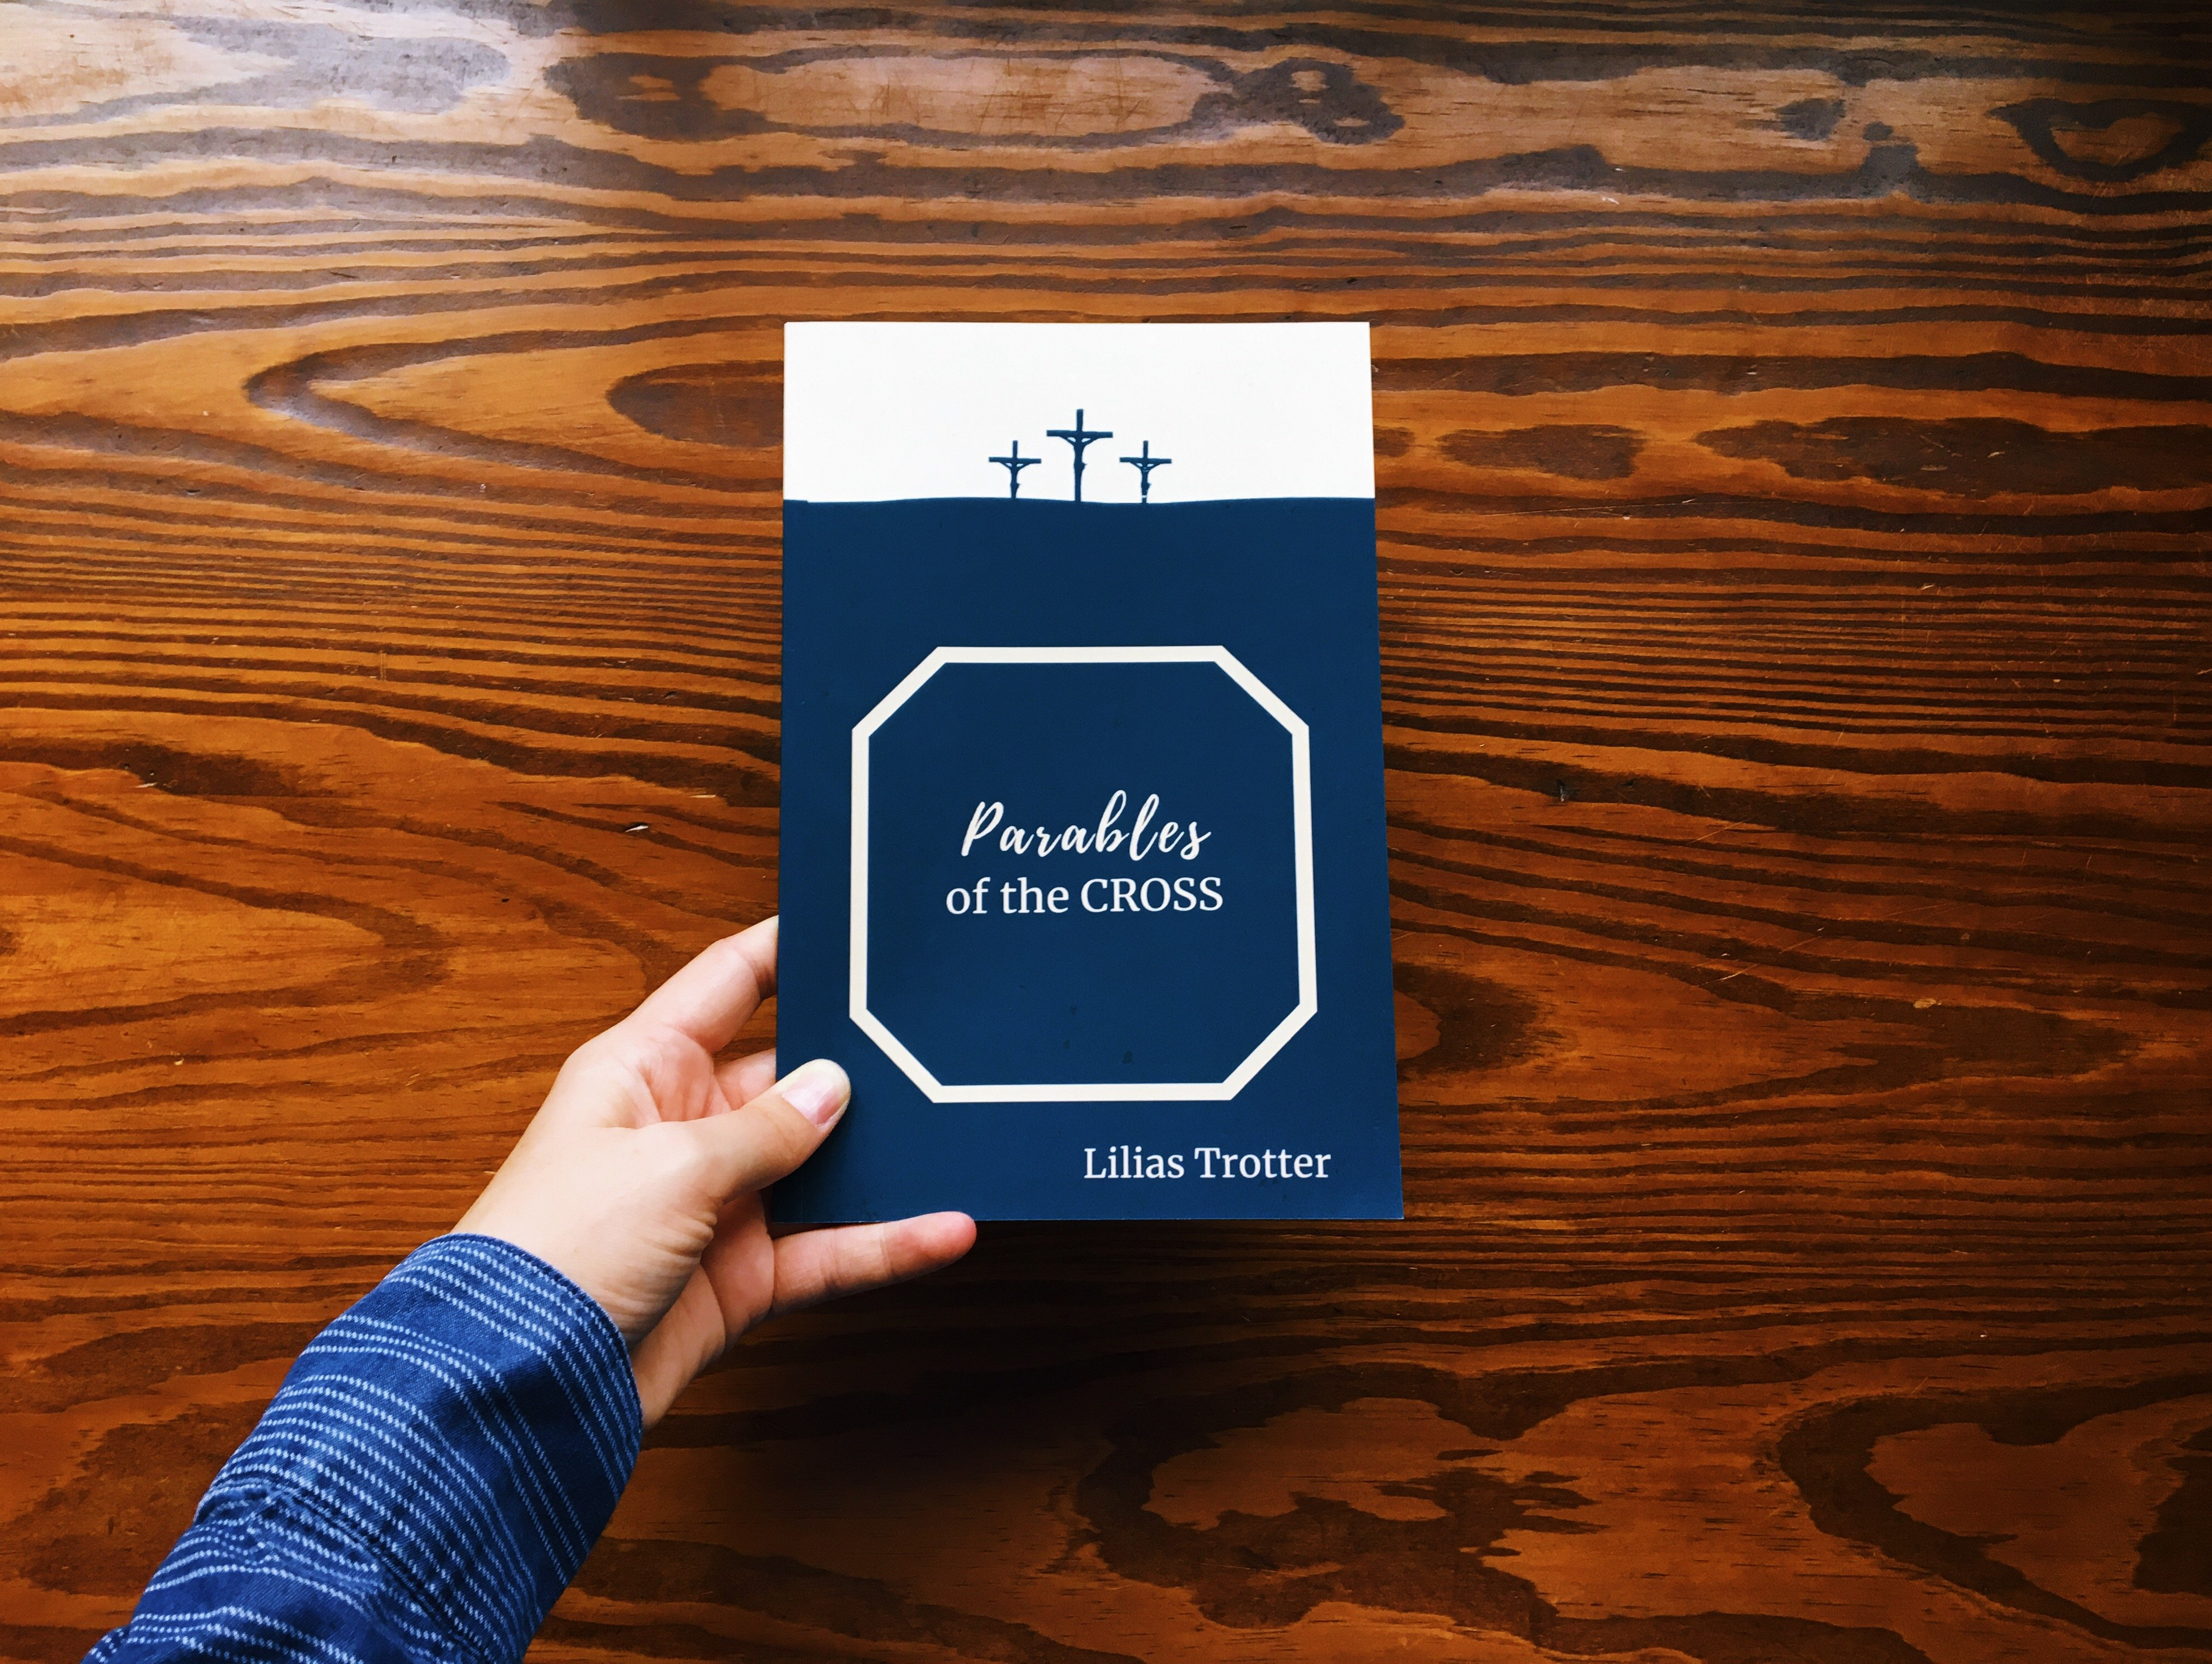 parables-of-the-cross